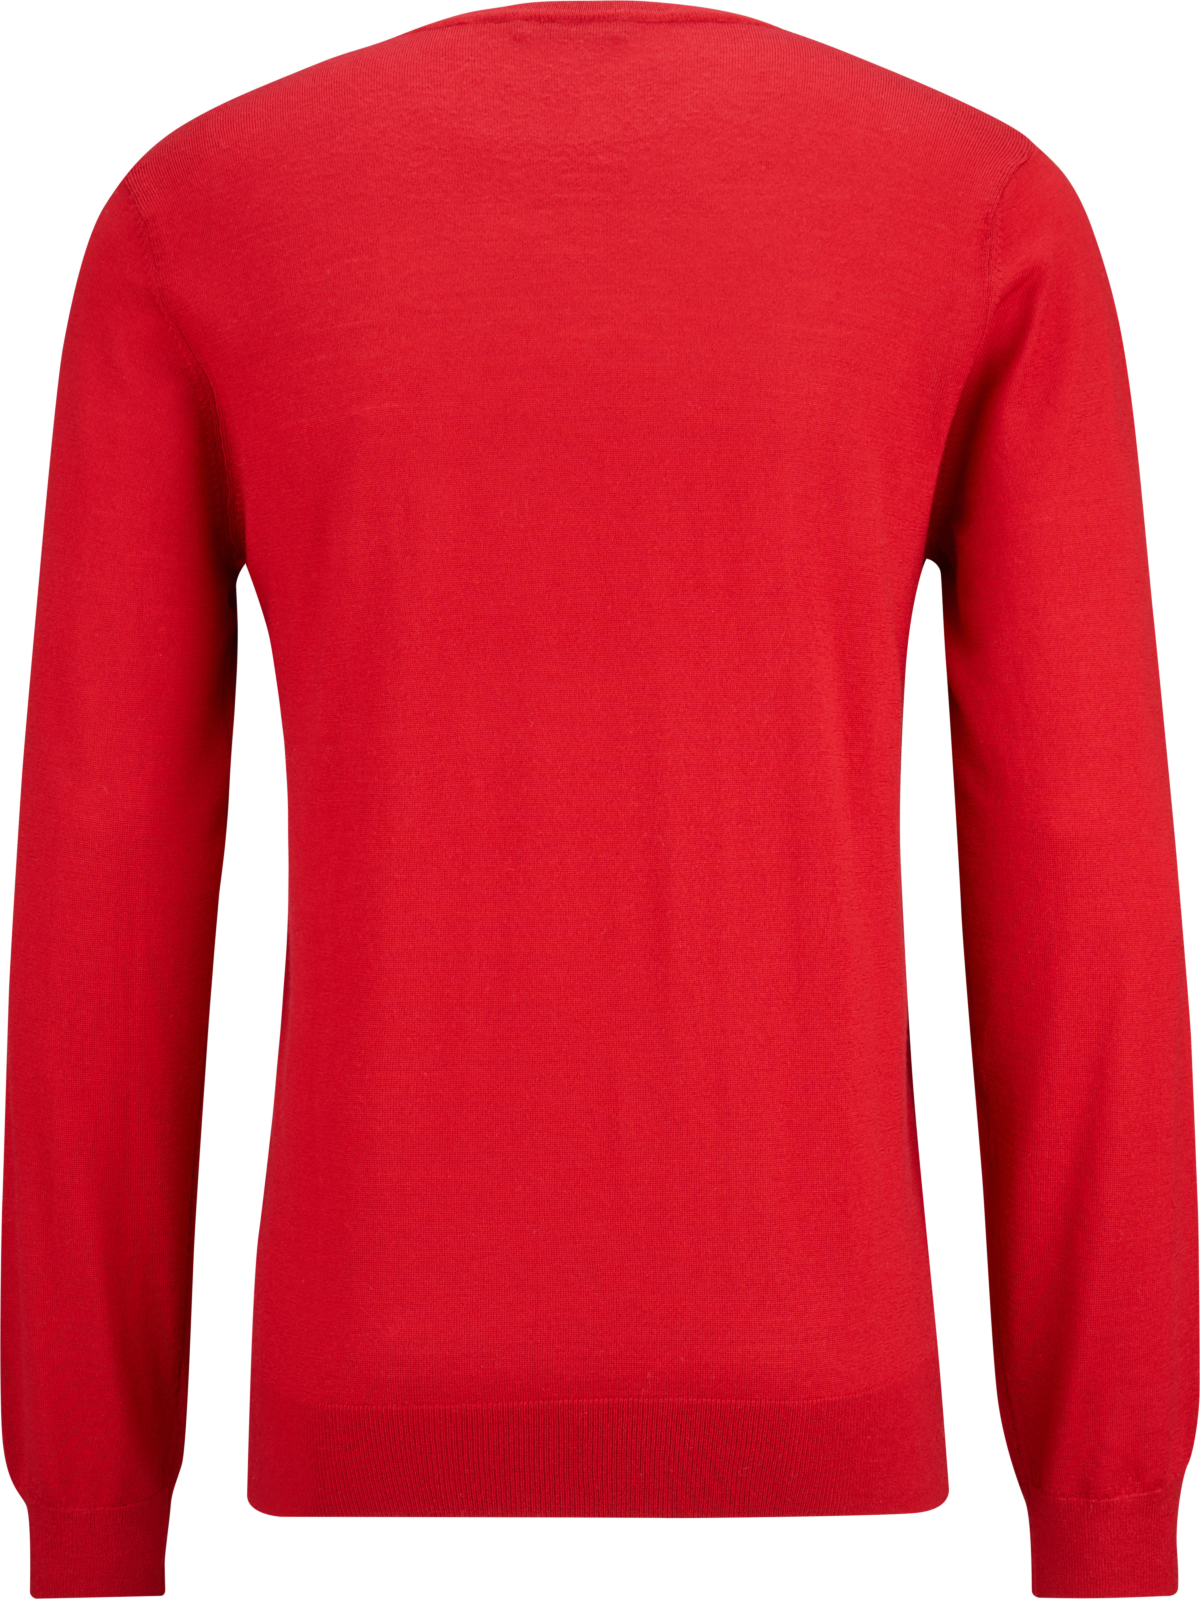 Greta & Luis Pullover in Rot 437517